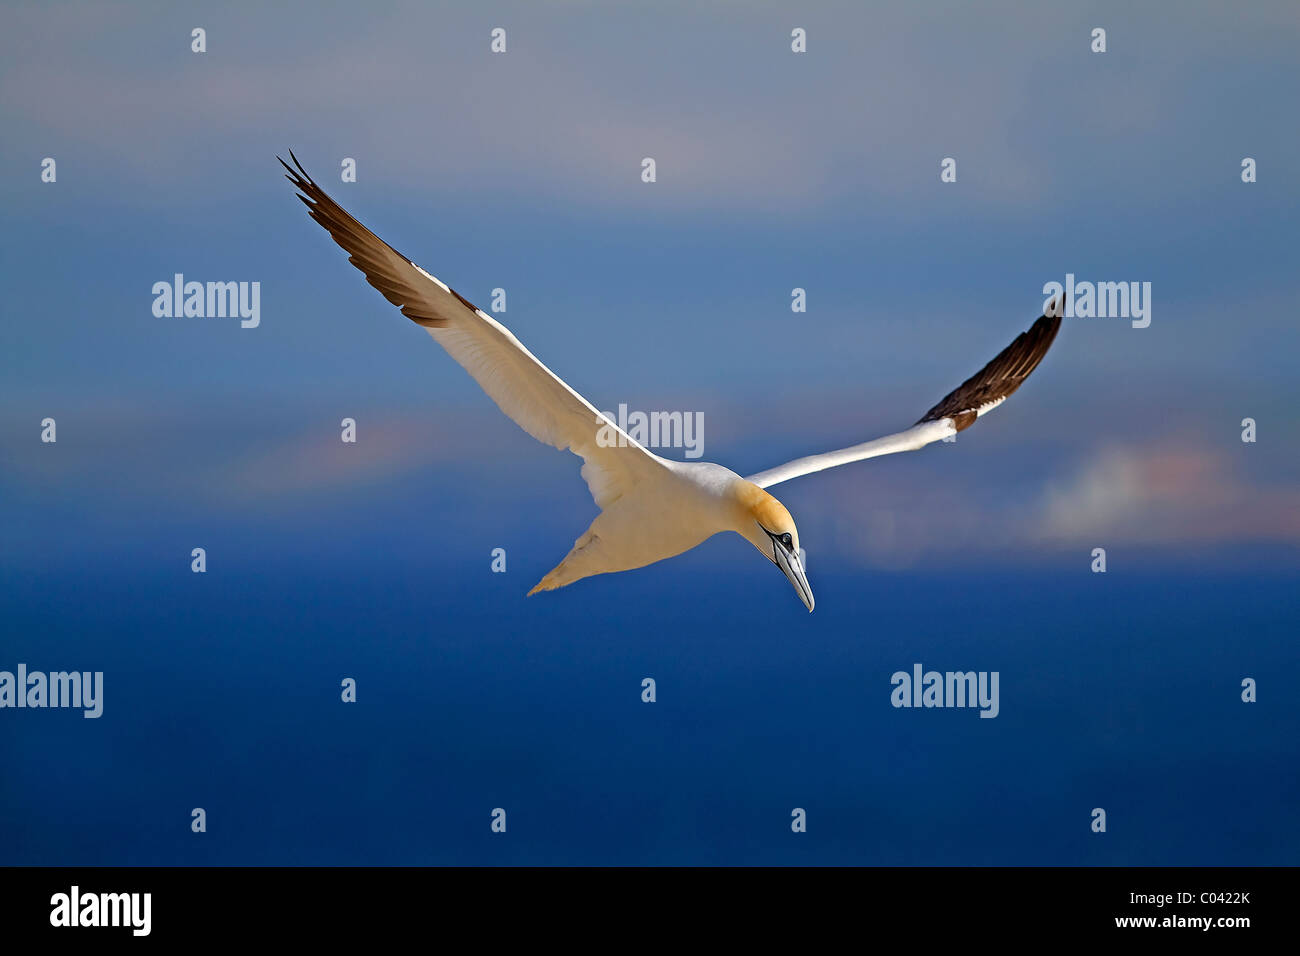 Northern Gannet in flight - Stock Image